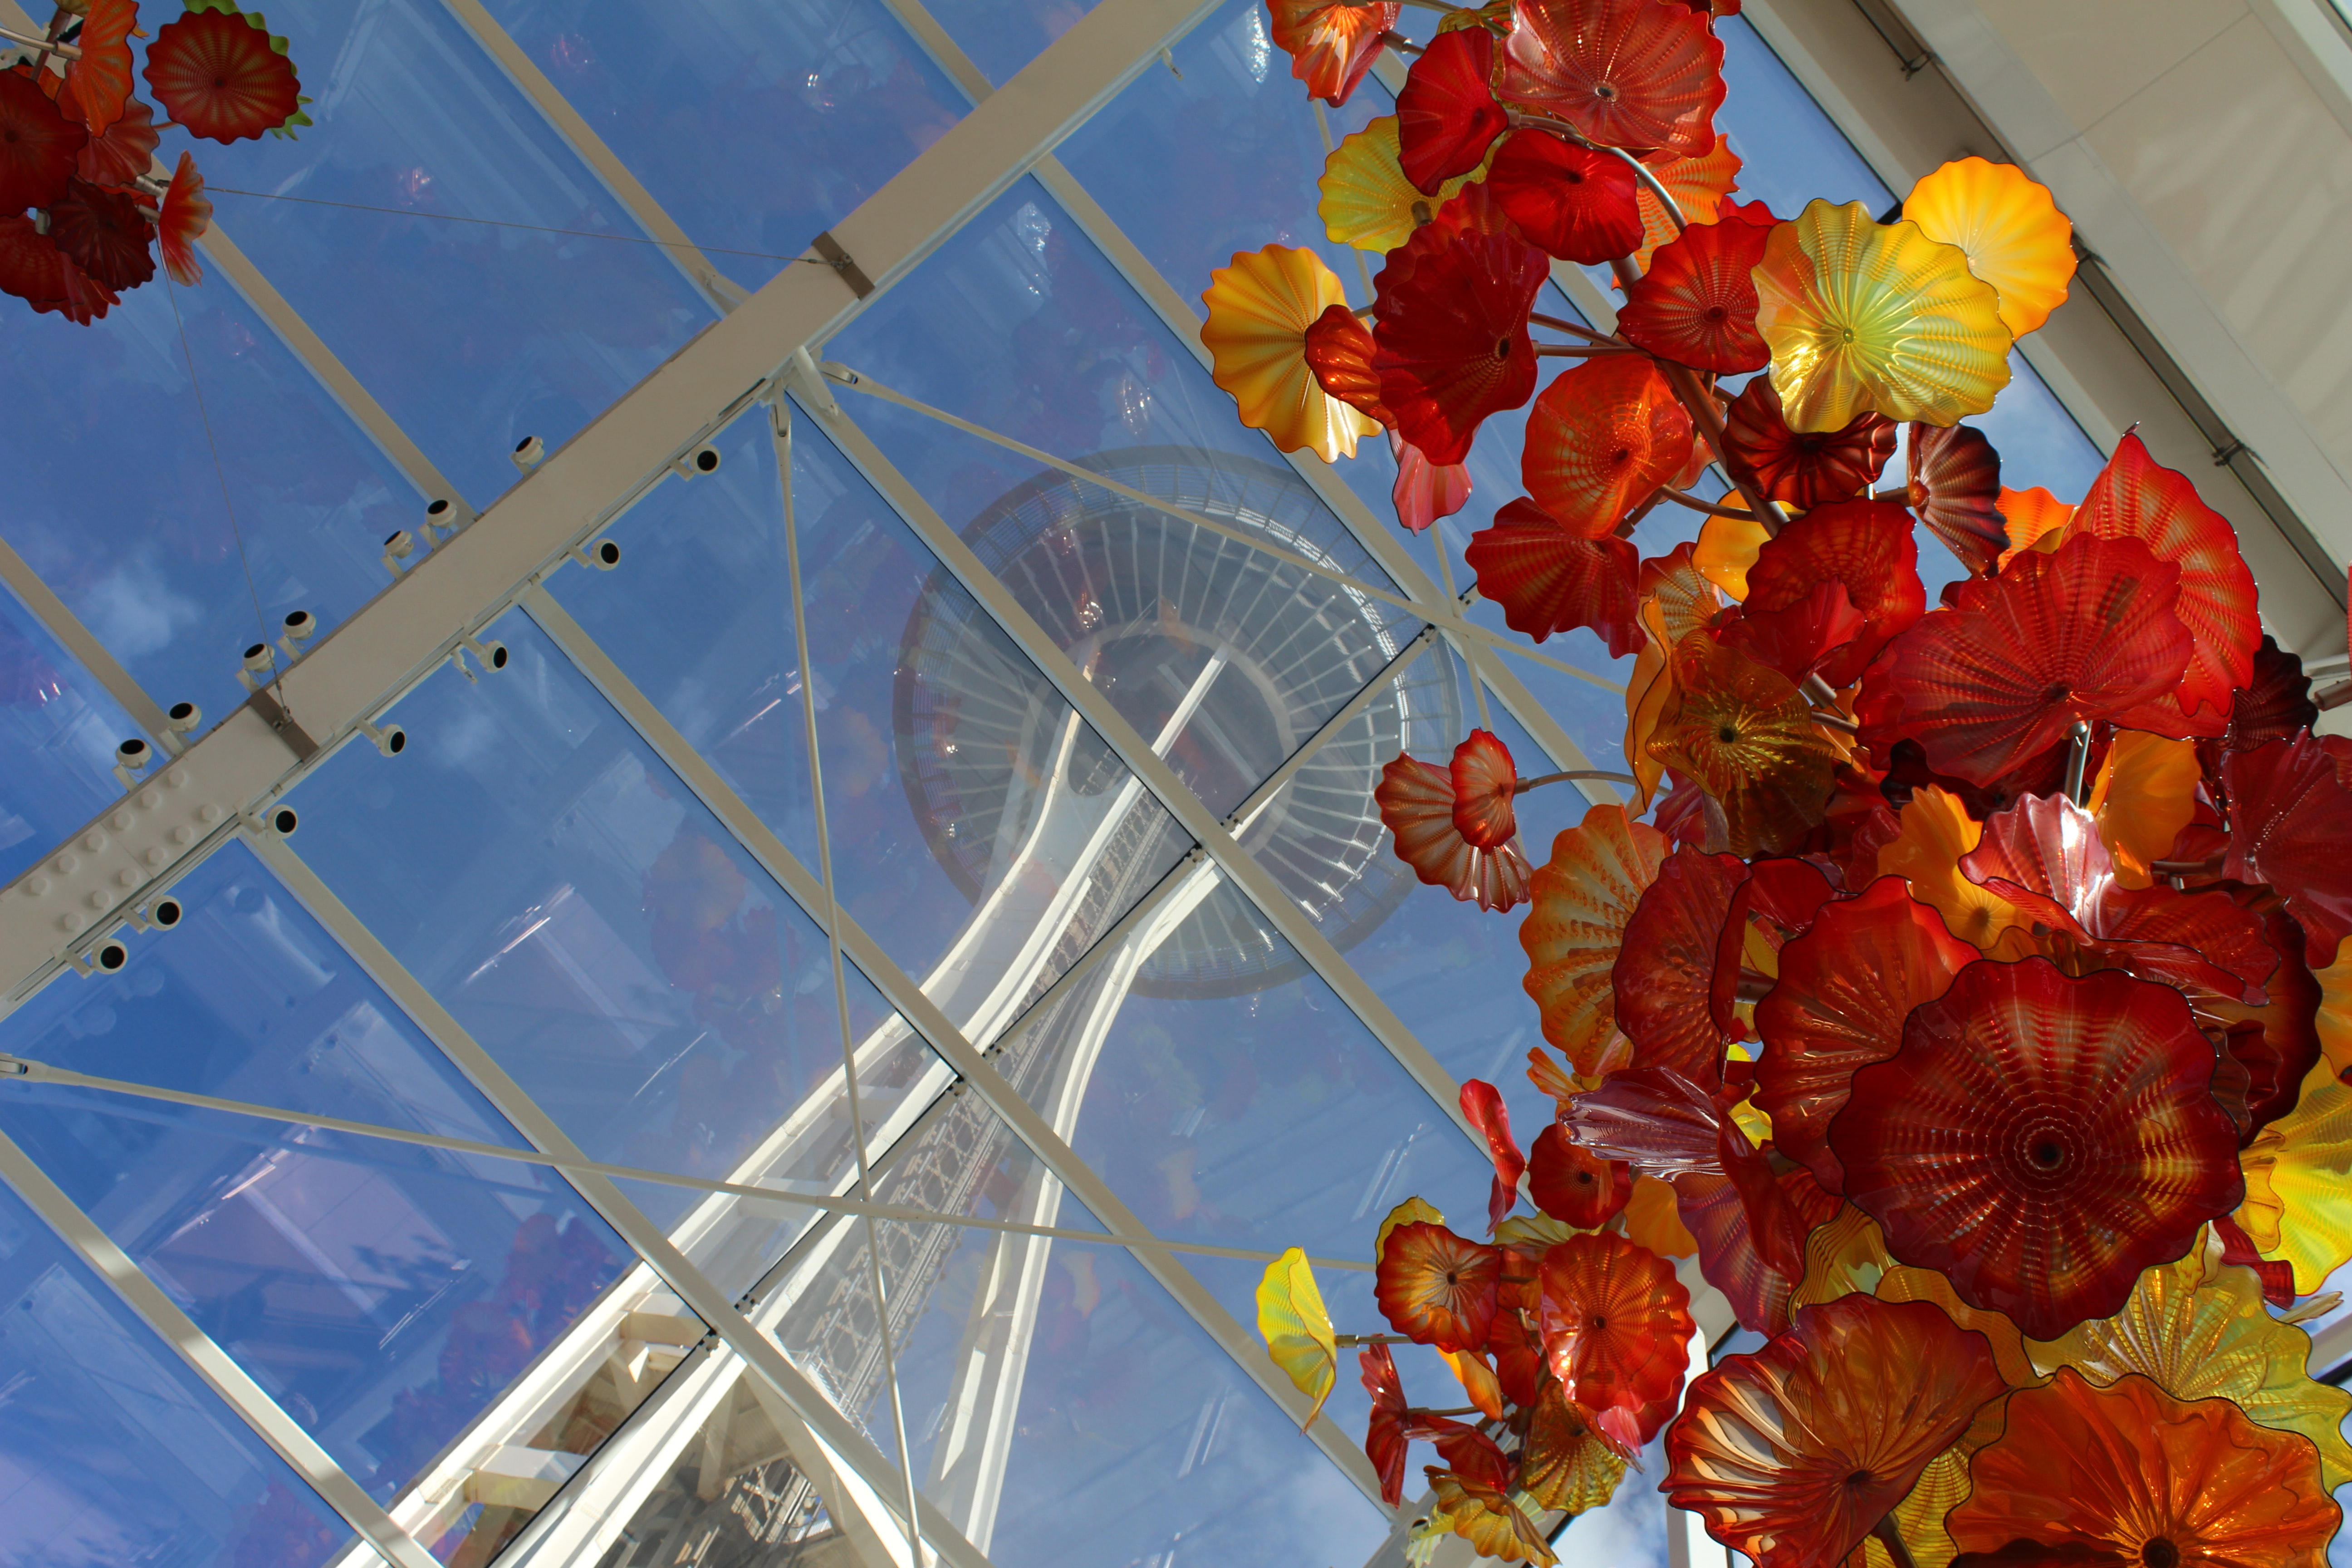 worm view of space needle during daytime